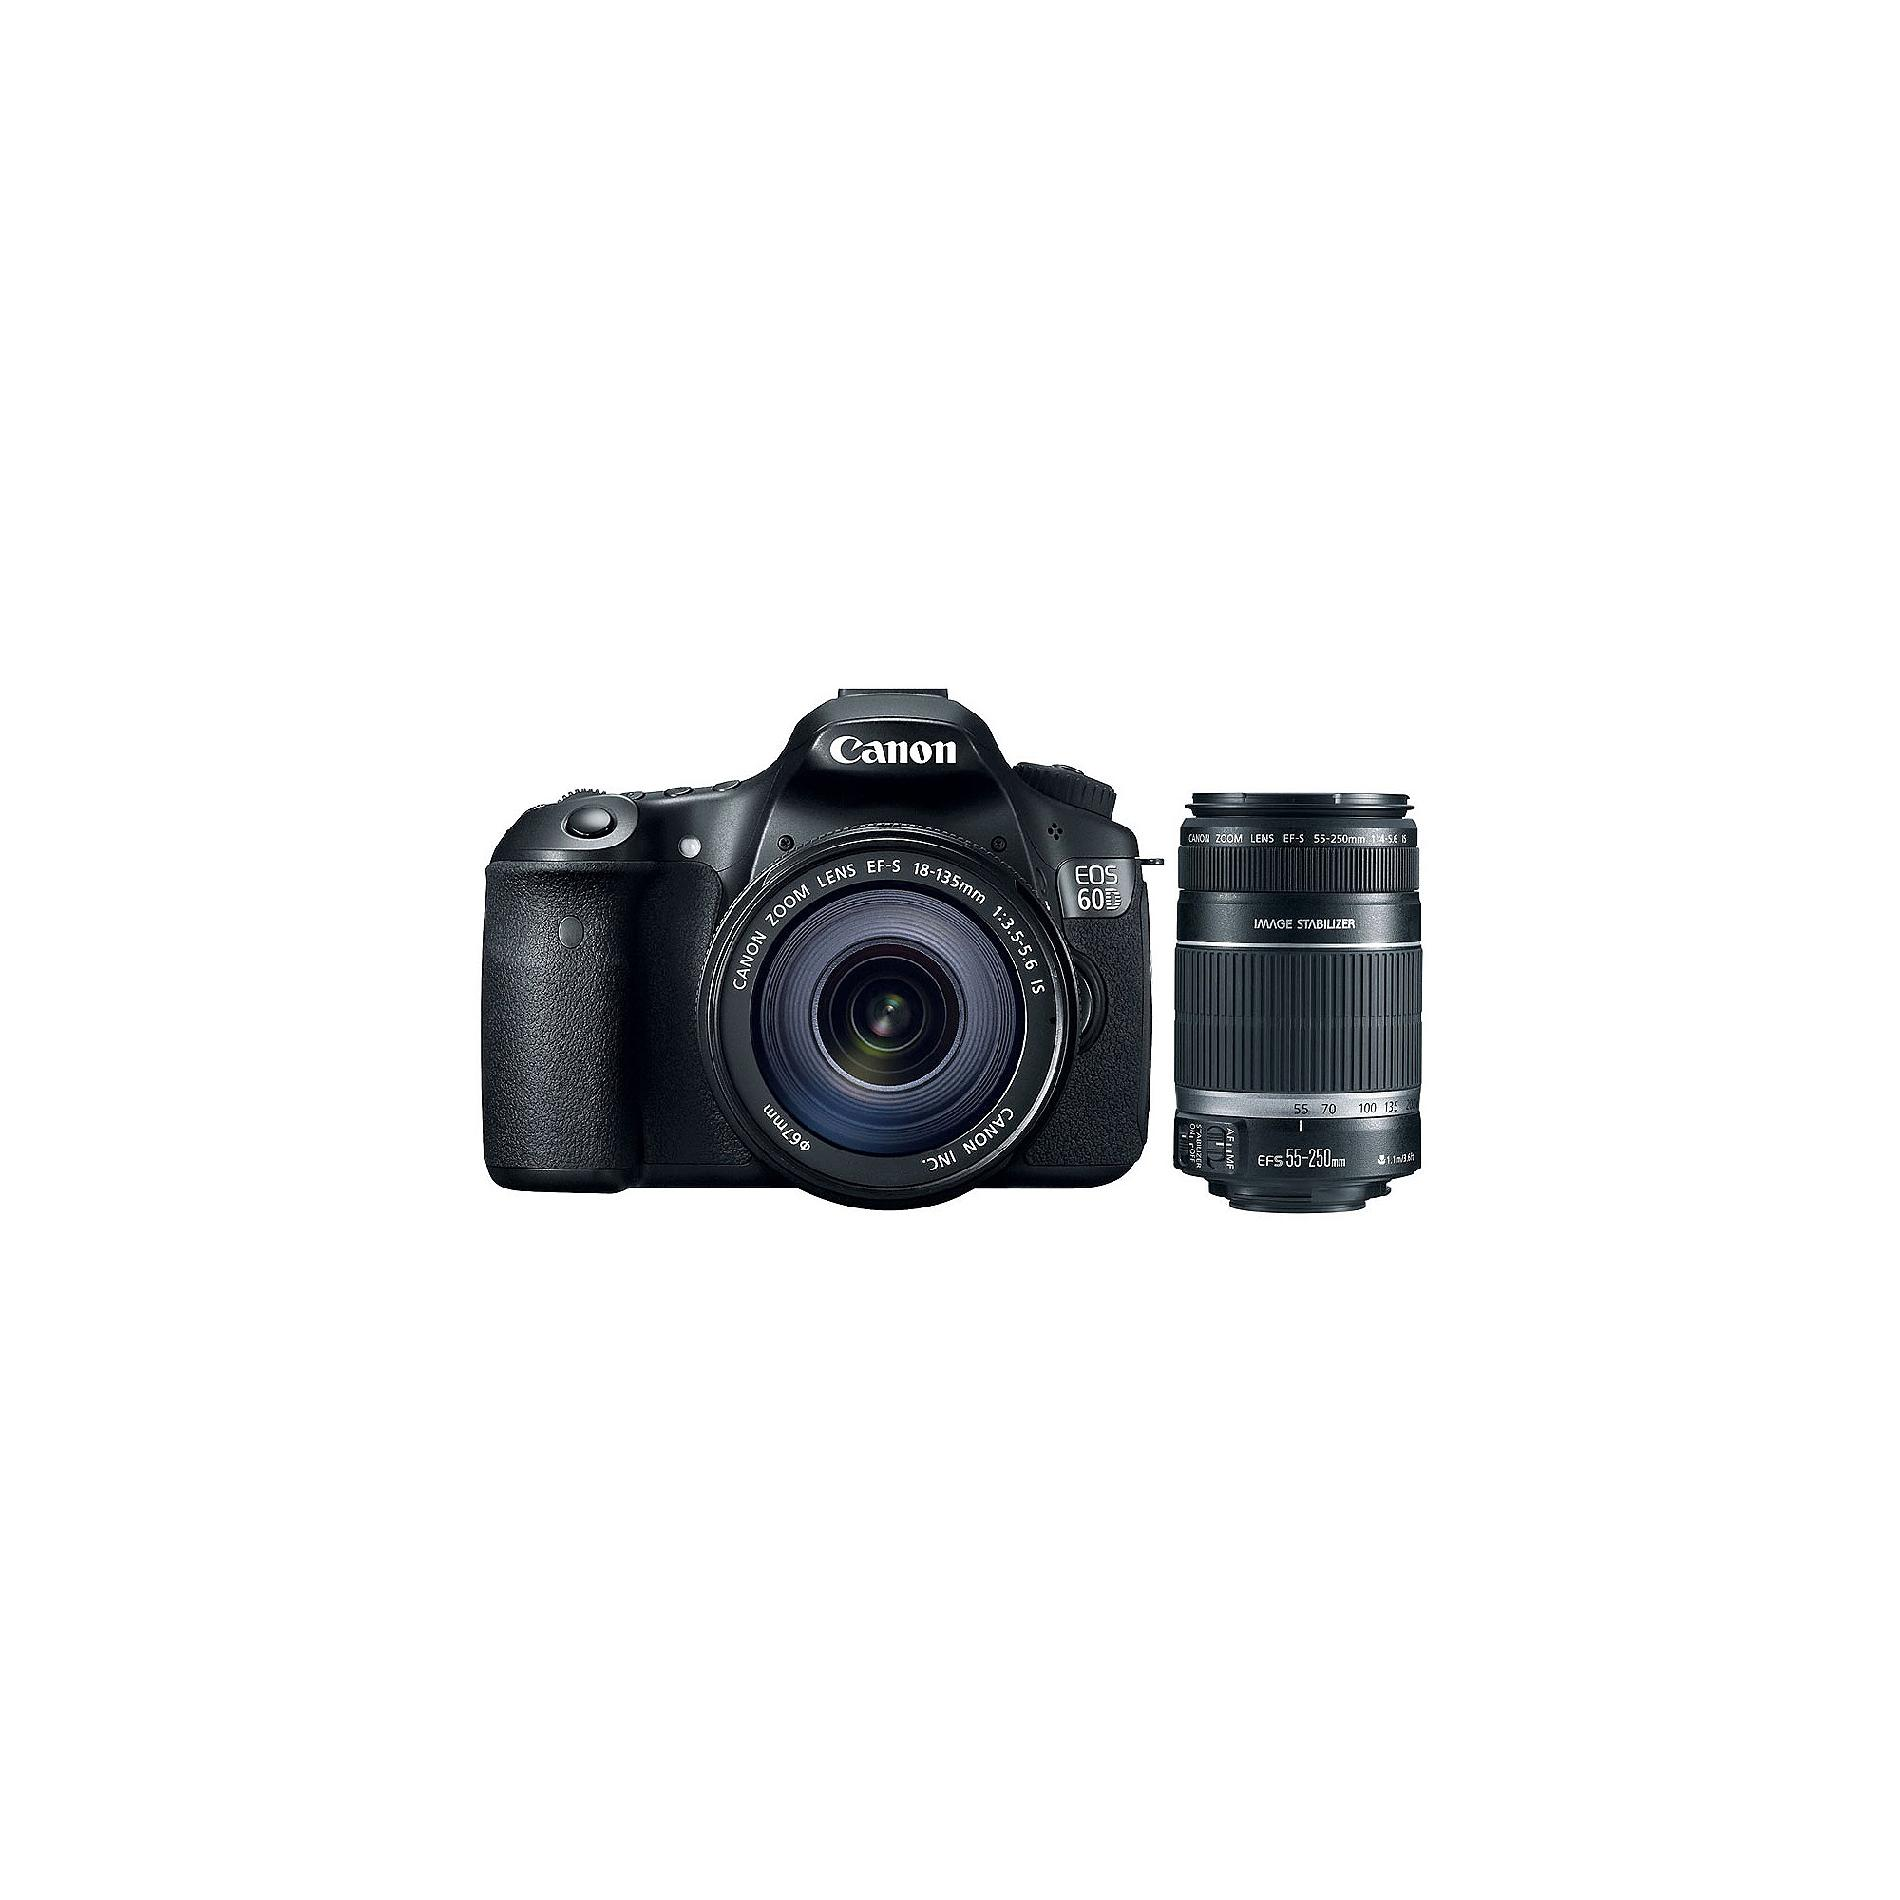 4460B004L1-KIT EOS 60D Digital SLR Camera,